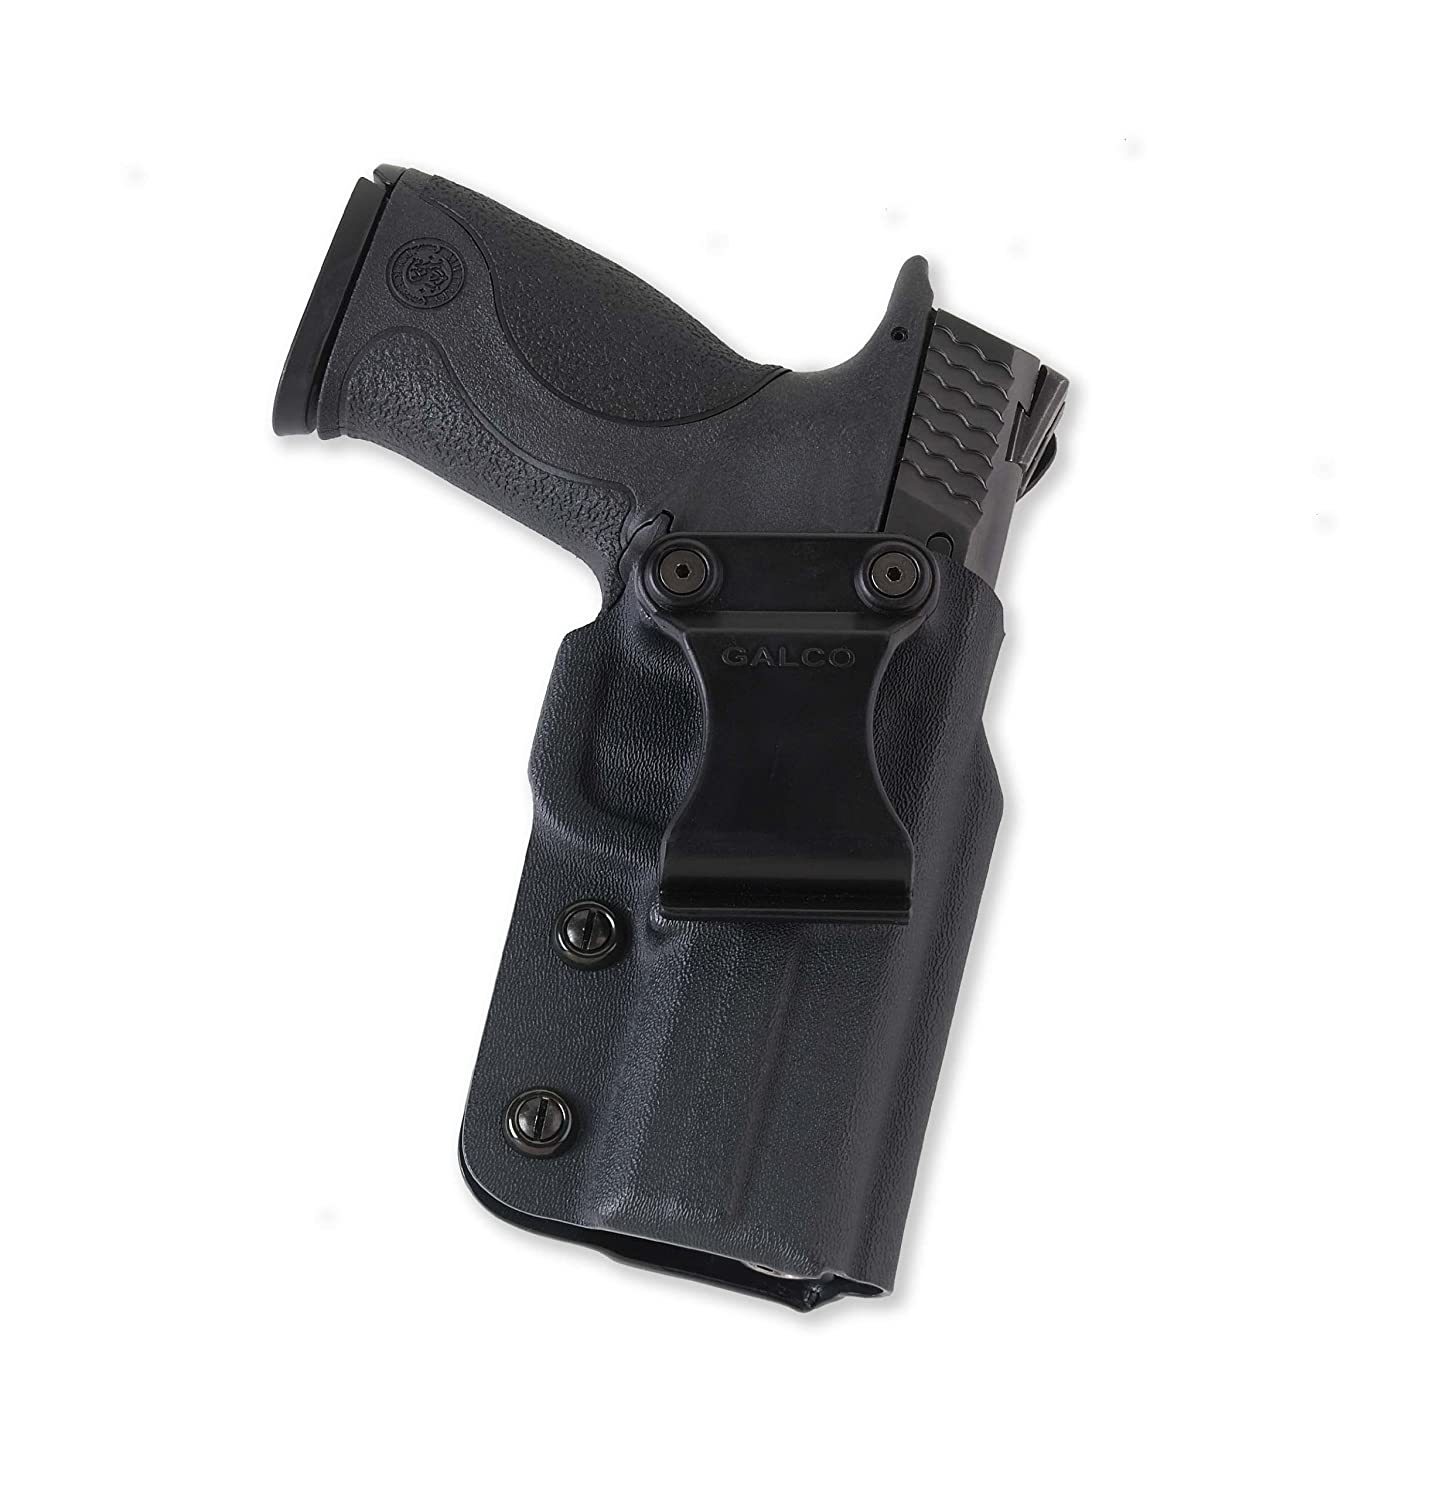 Galco Triton Kydex IWB Holster for Glock 19, 23, 32 (Black, Right-hand) TR226